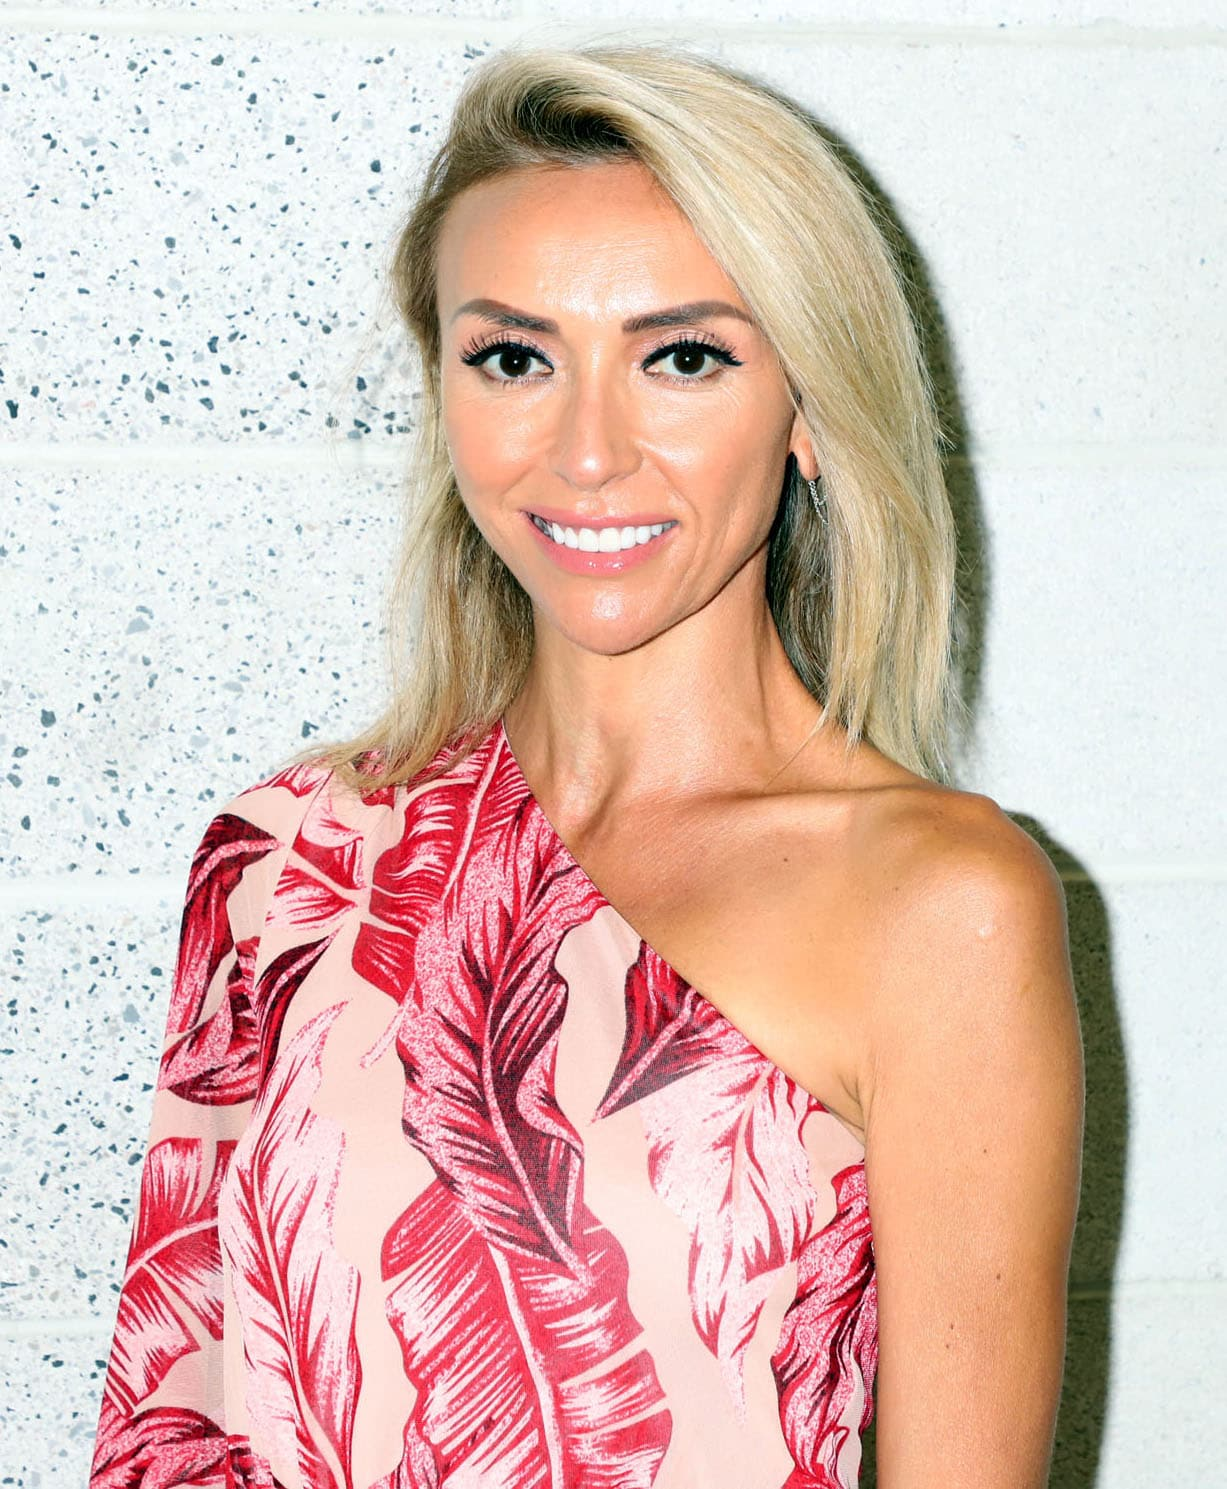 Giuliana Rancic wears soft pink makeup and a side-parted hairstyle